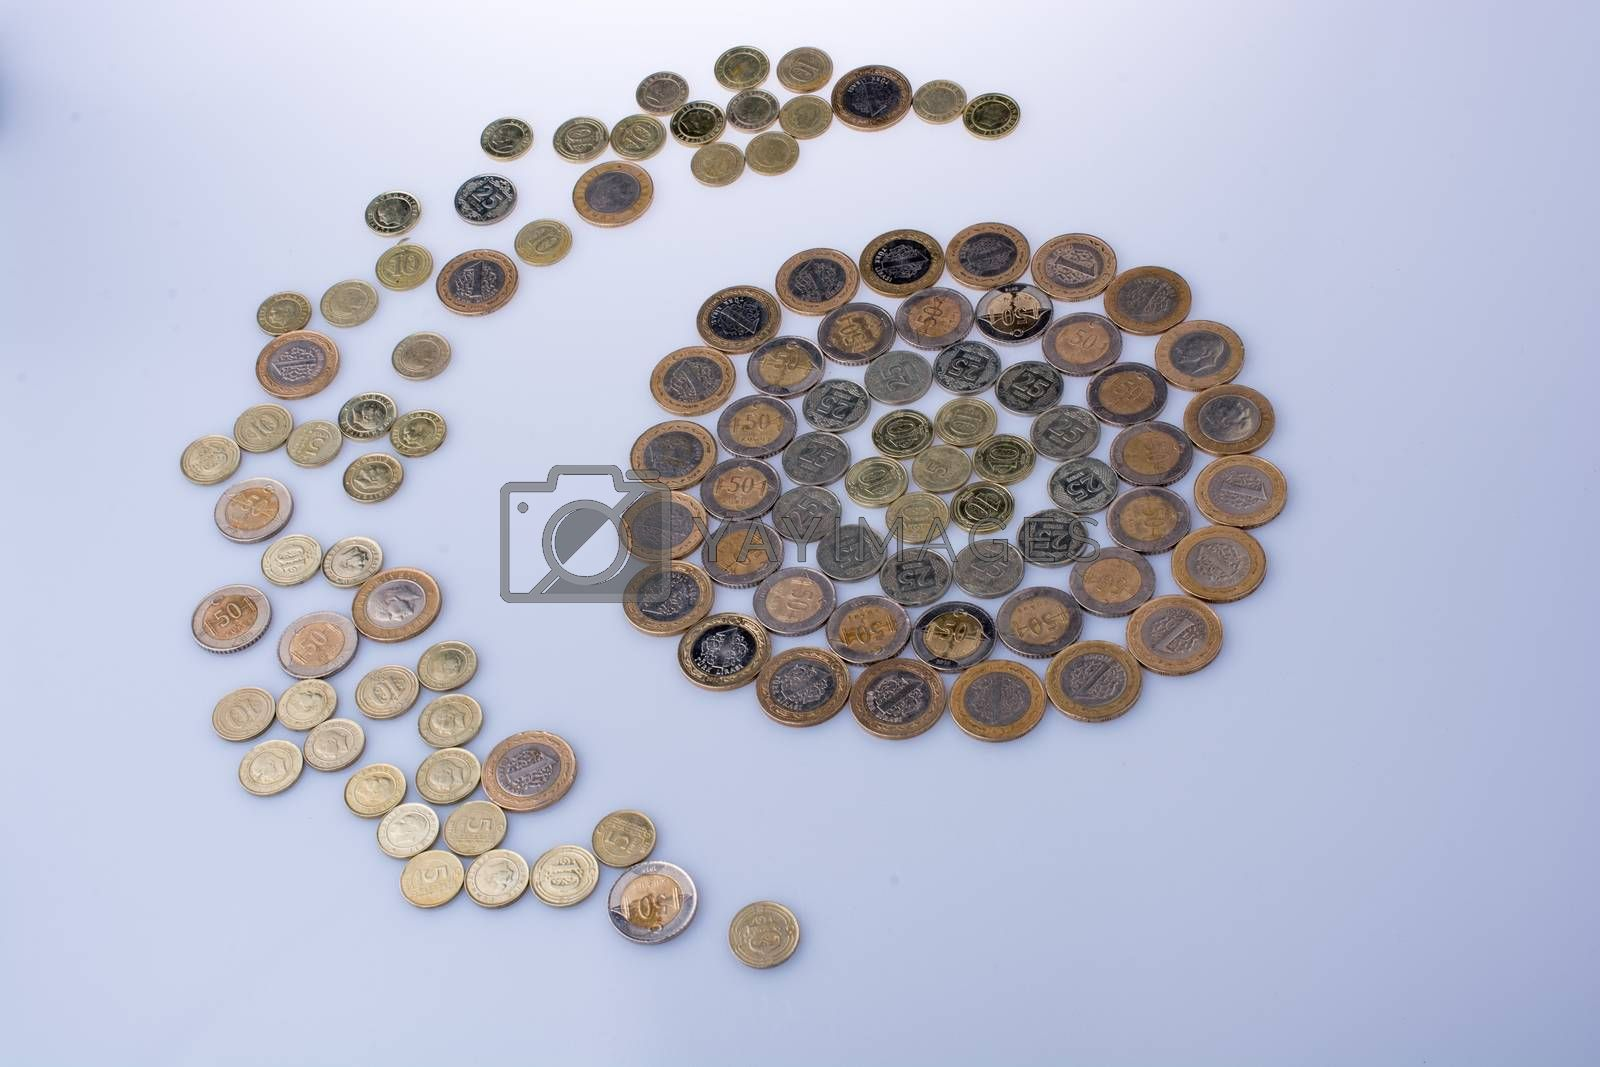 Turkish Lira coins shape a crescent round a circle object on white background